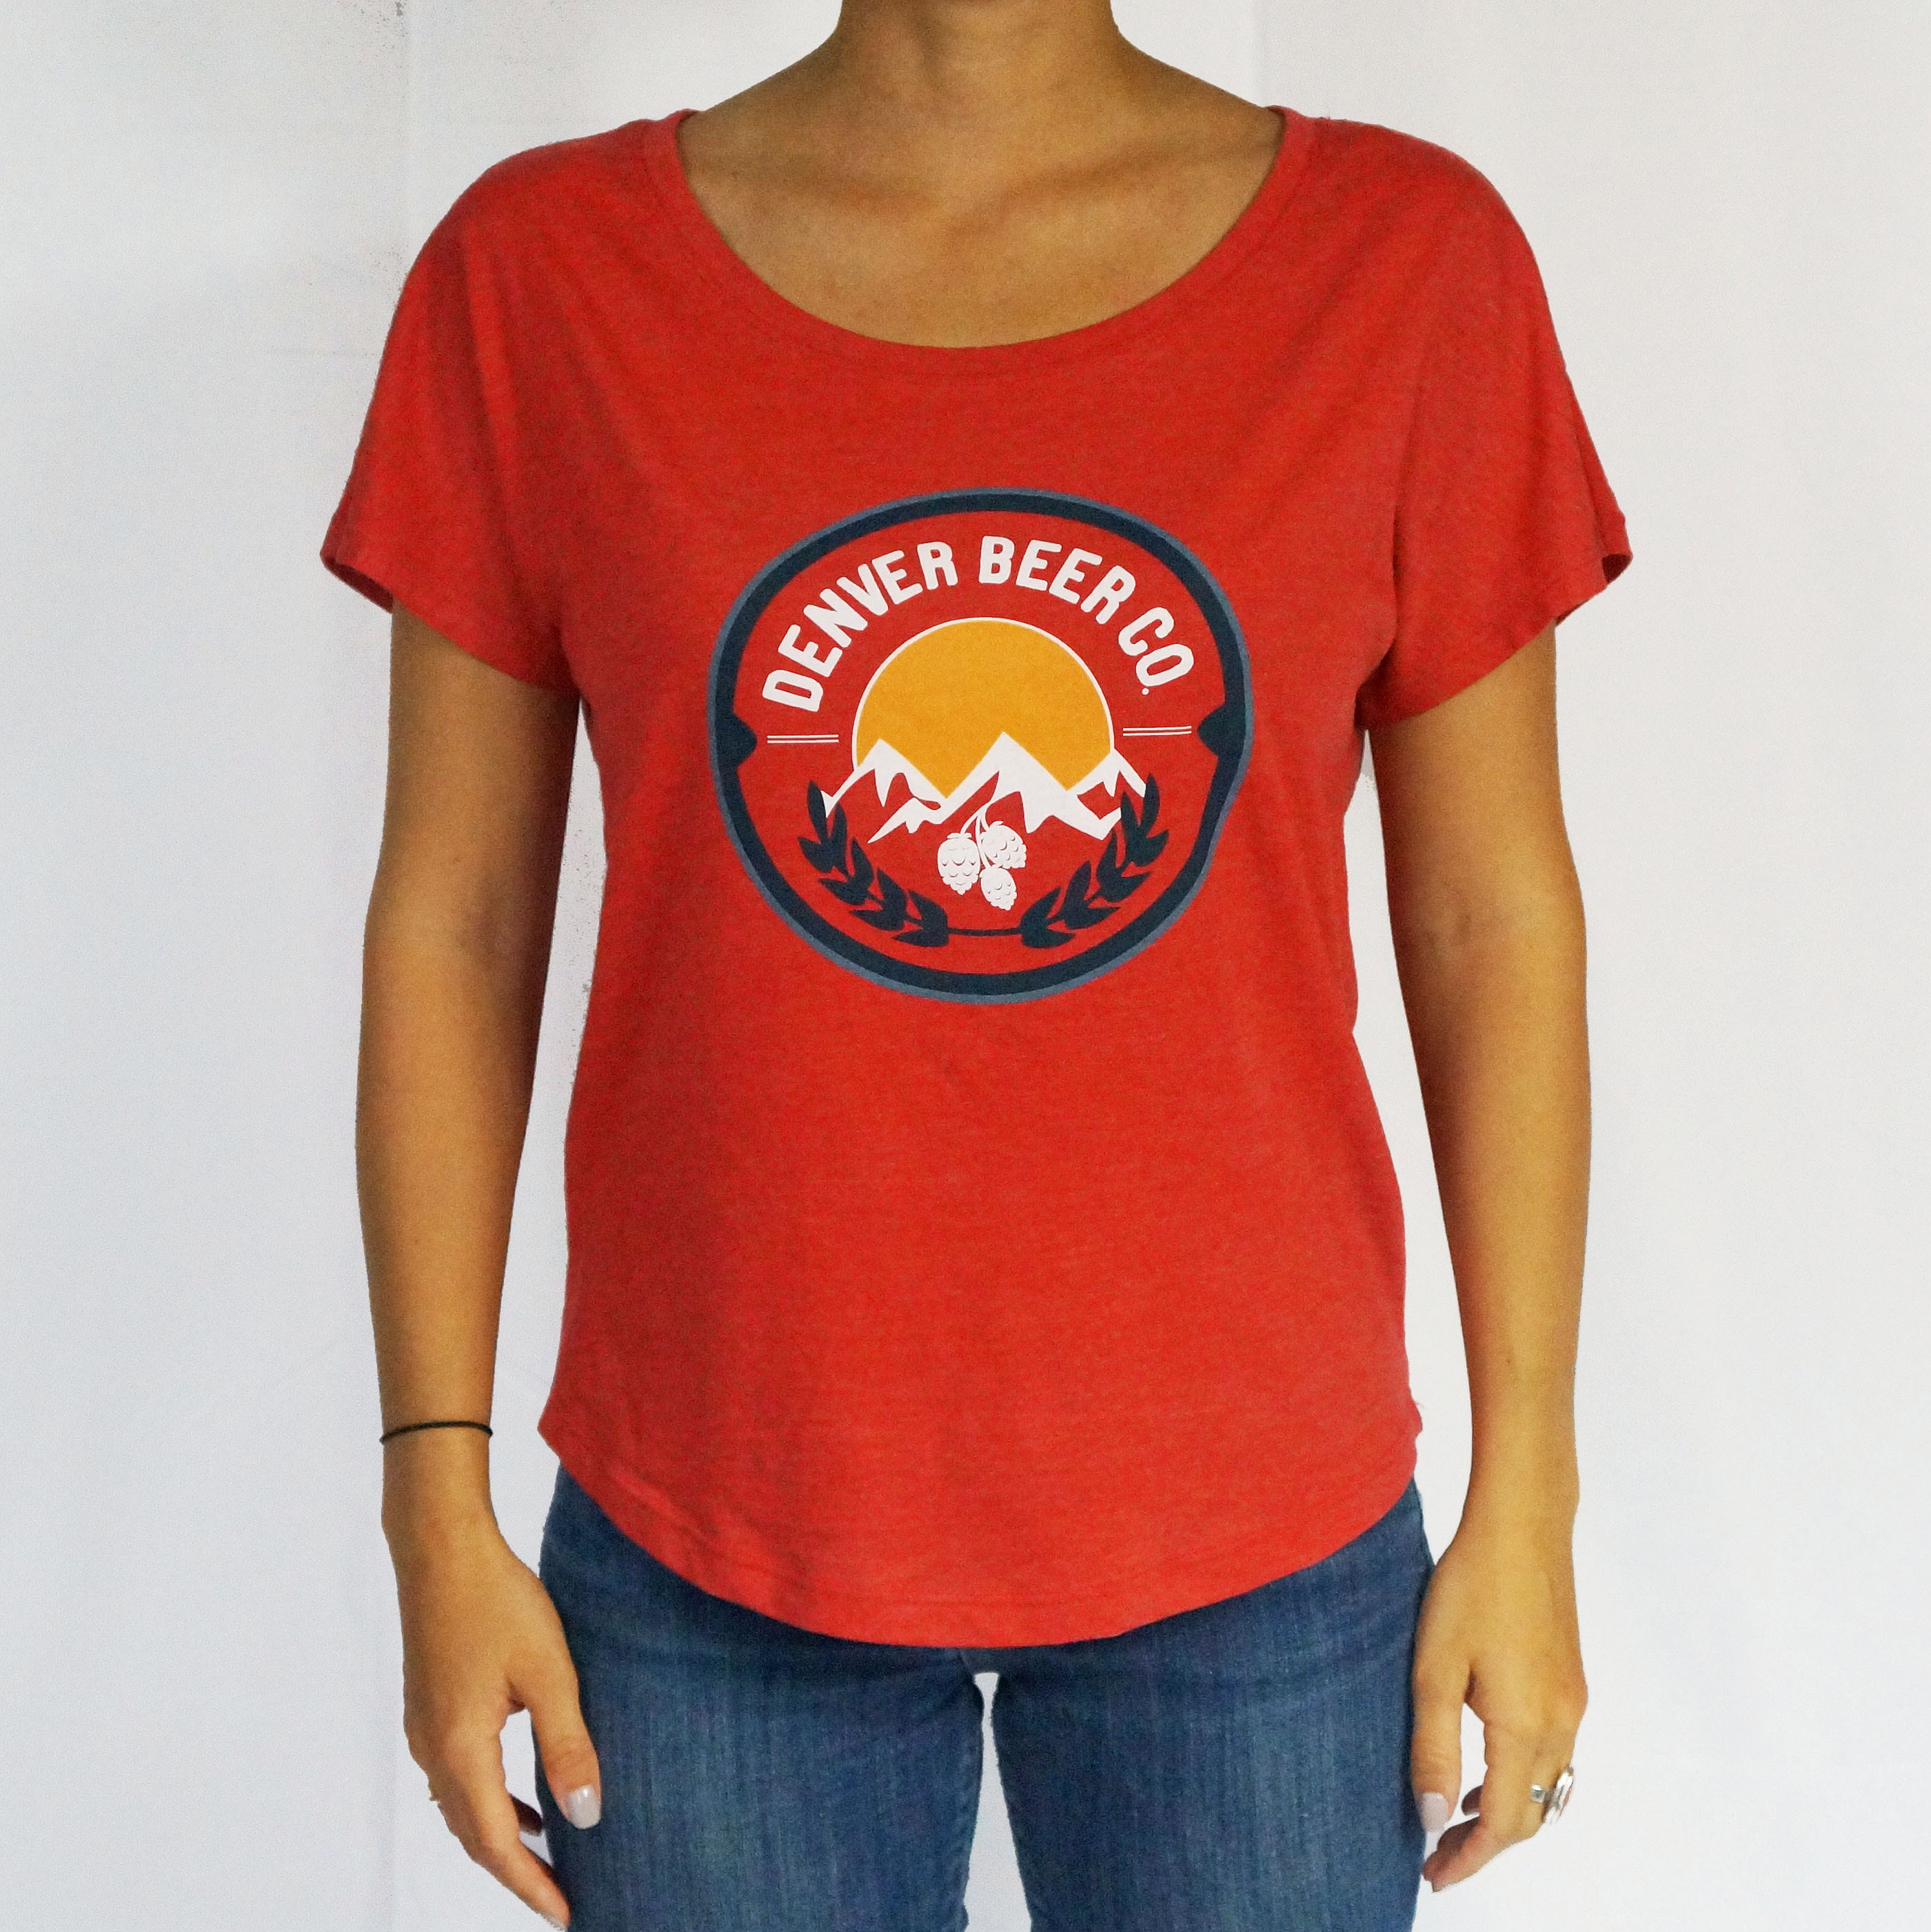 DBC Red Logo Shirt